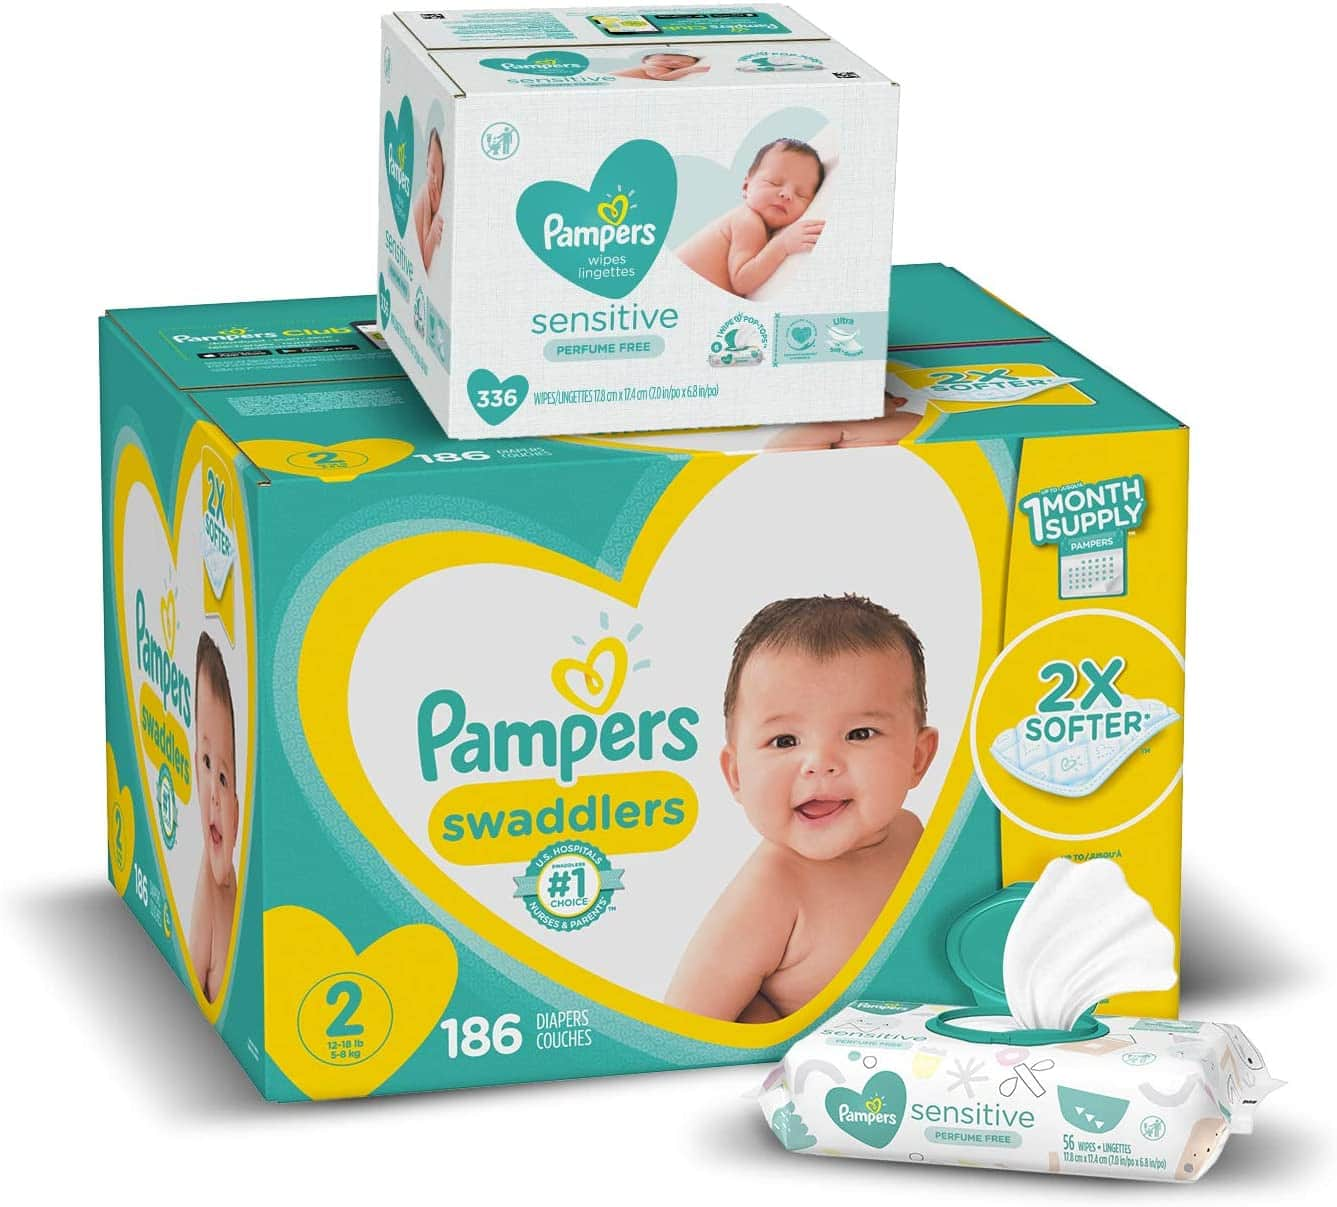 25% OFF ONE Select Pampers Swaddlers Diapers + Wipes Virtual Bundles (Stacked with 20% Diaper Discount) $32.45